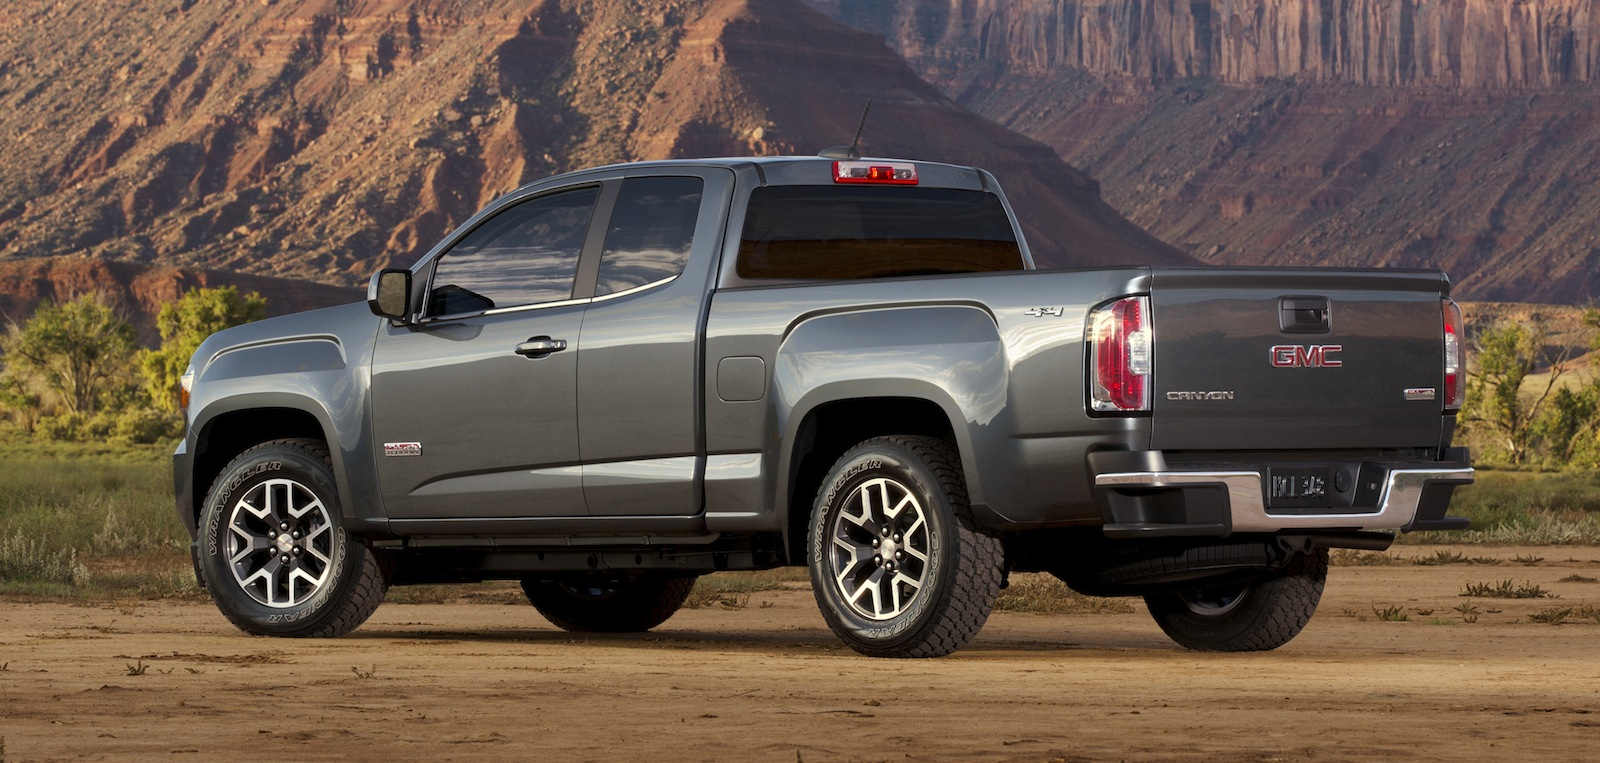 Gmc Canyon Colorado Based Mid Size Pick Up Revealed